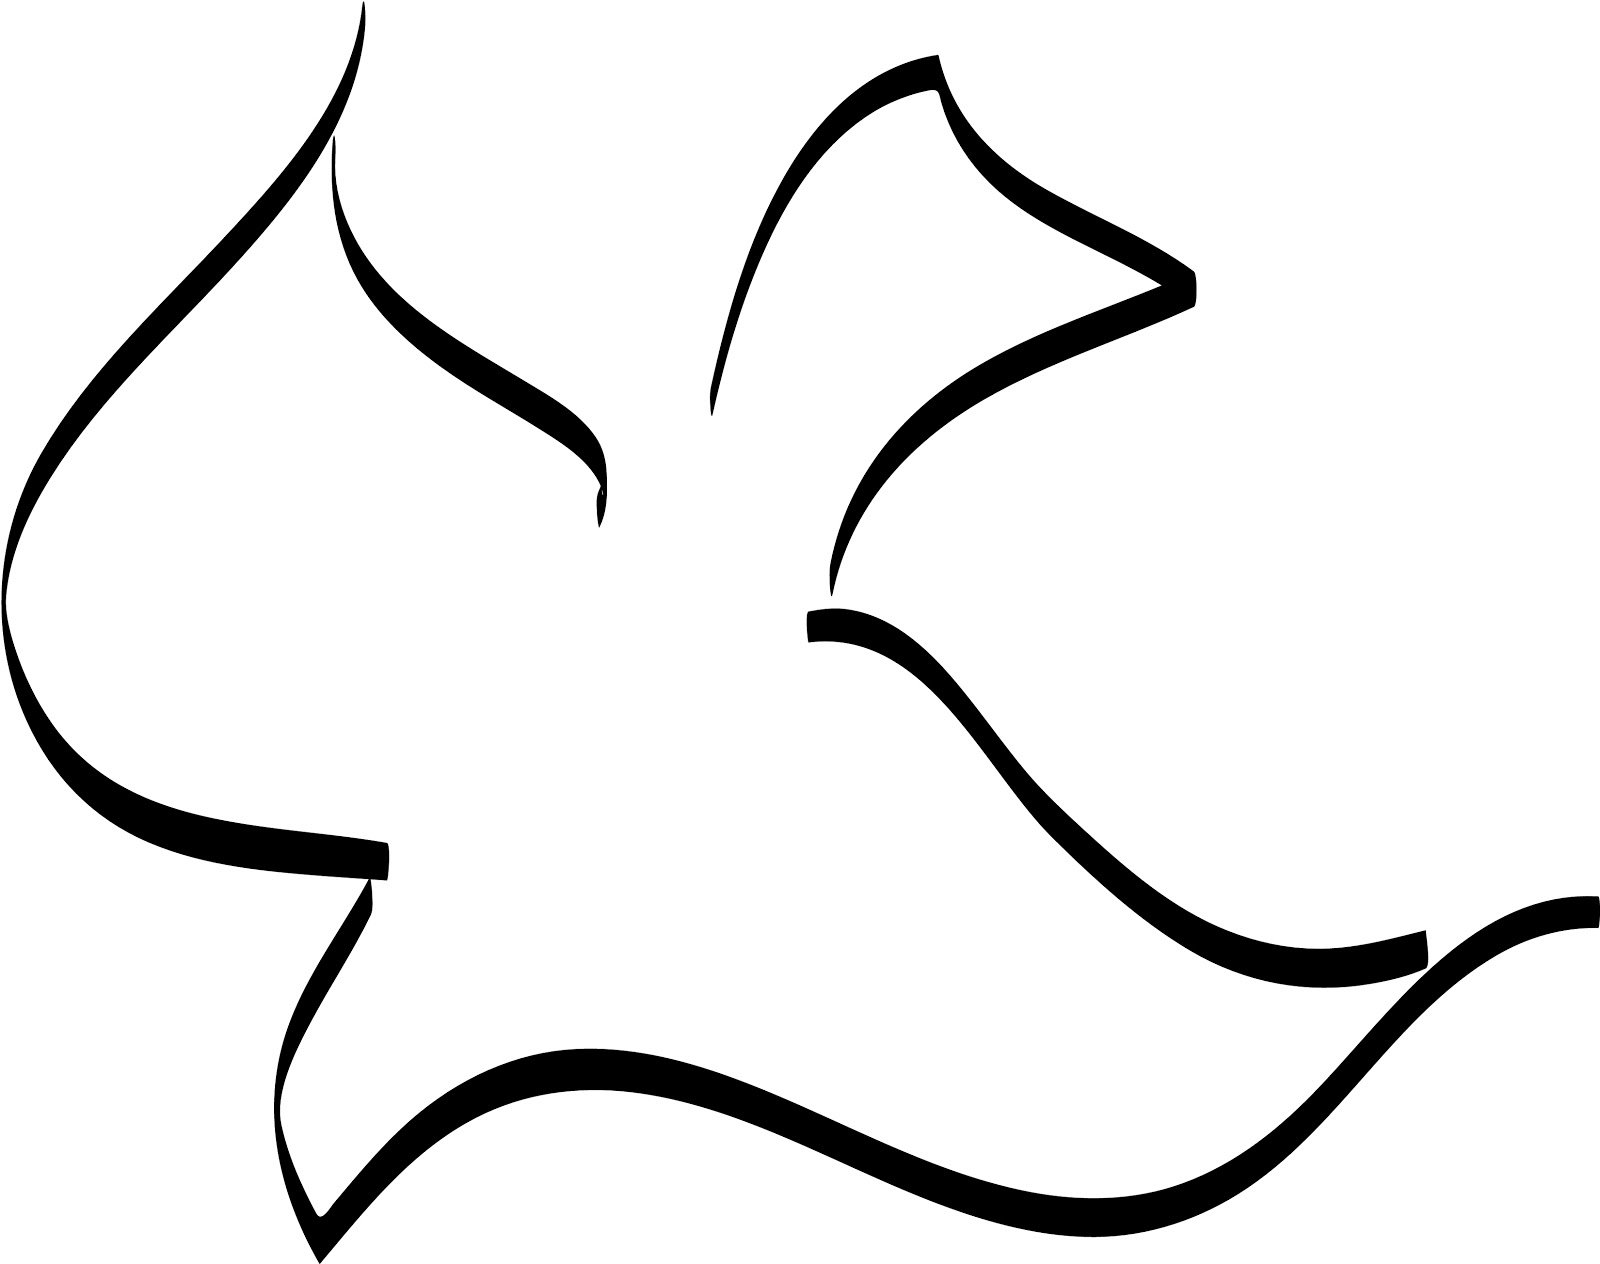 Doves clipart printable. Free outline of a